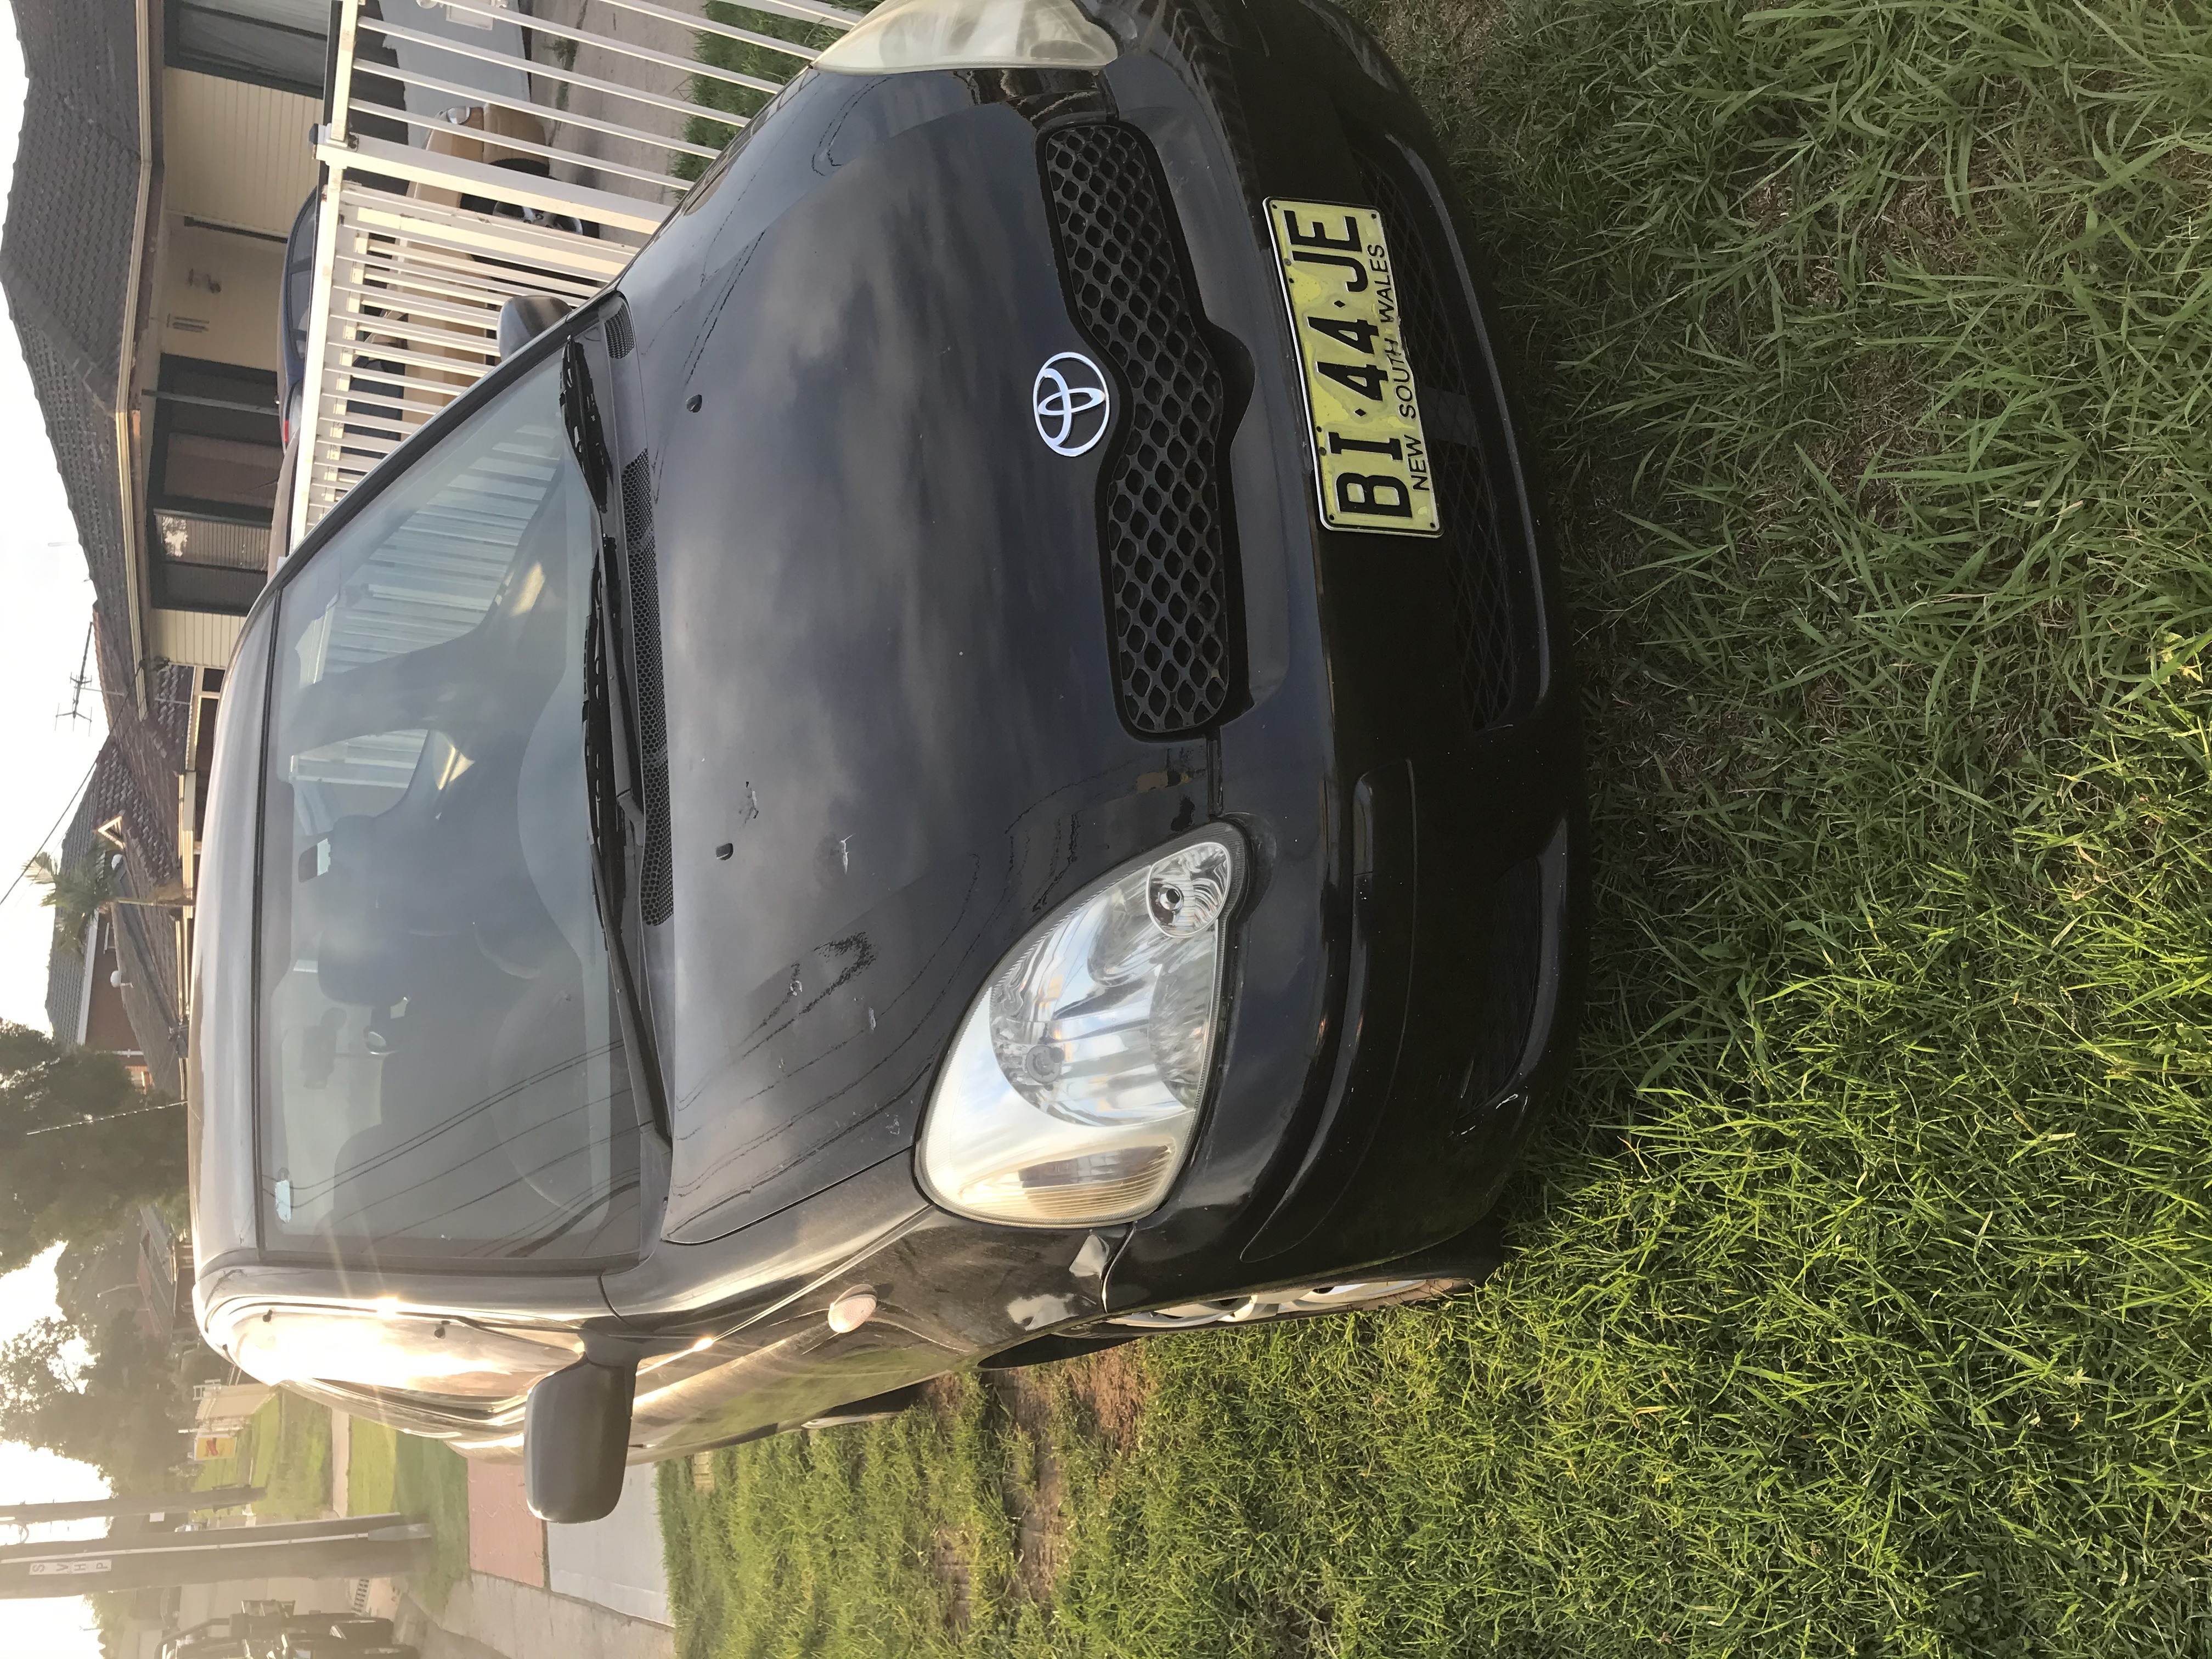 2003 automatic rego 17/4/2020 kms 172753   Logbook  location Fairfield west